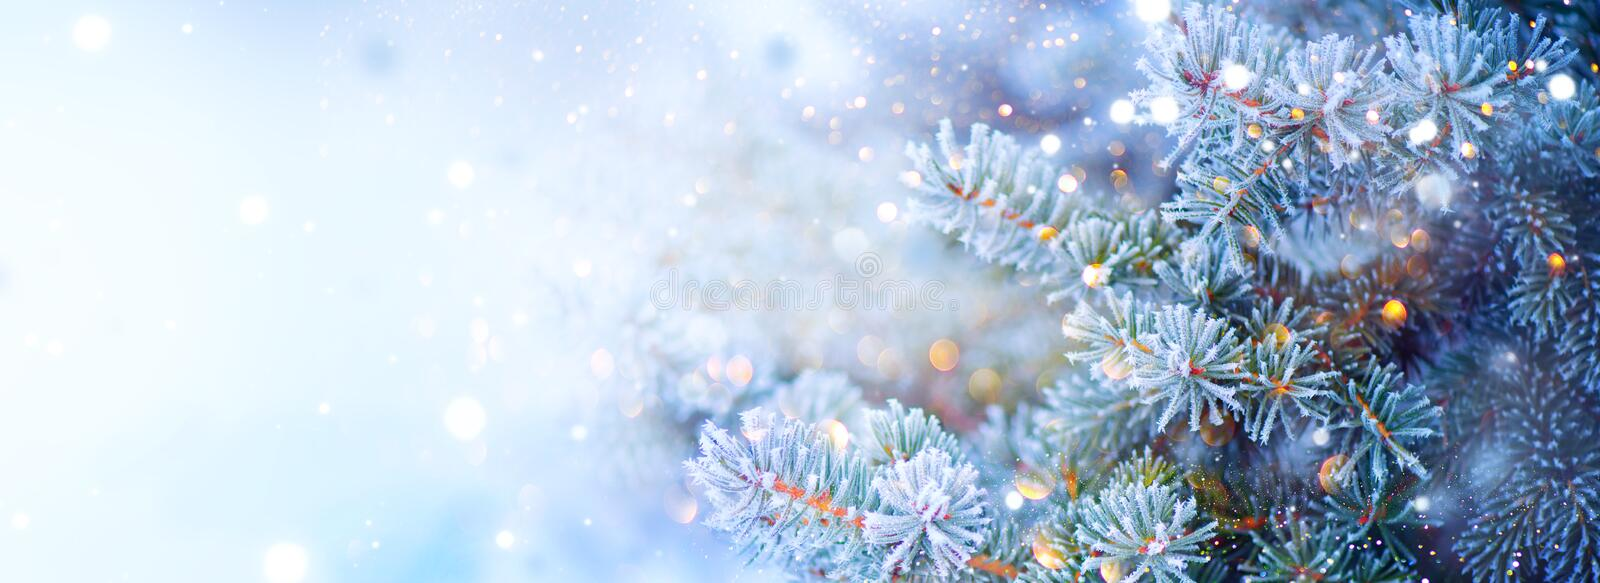 Christmas holiday tree. Border snow background. Snowflakes. Blue spruce, beautiful Christmas and New Year Xmas tree art design. Abstract blue widescreen royalty free stock photos